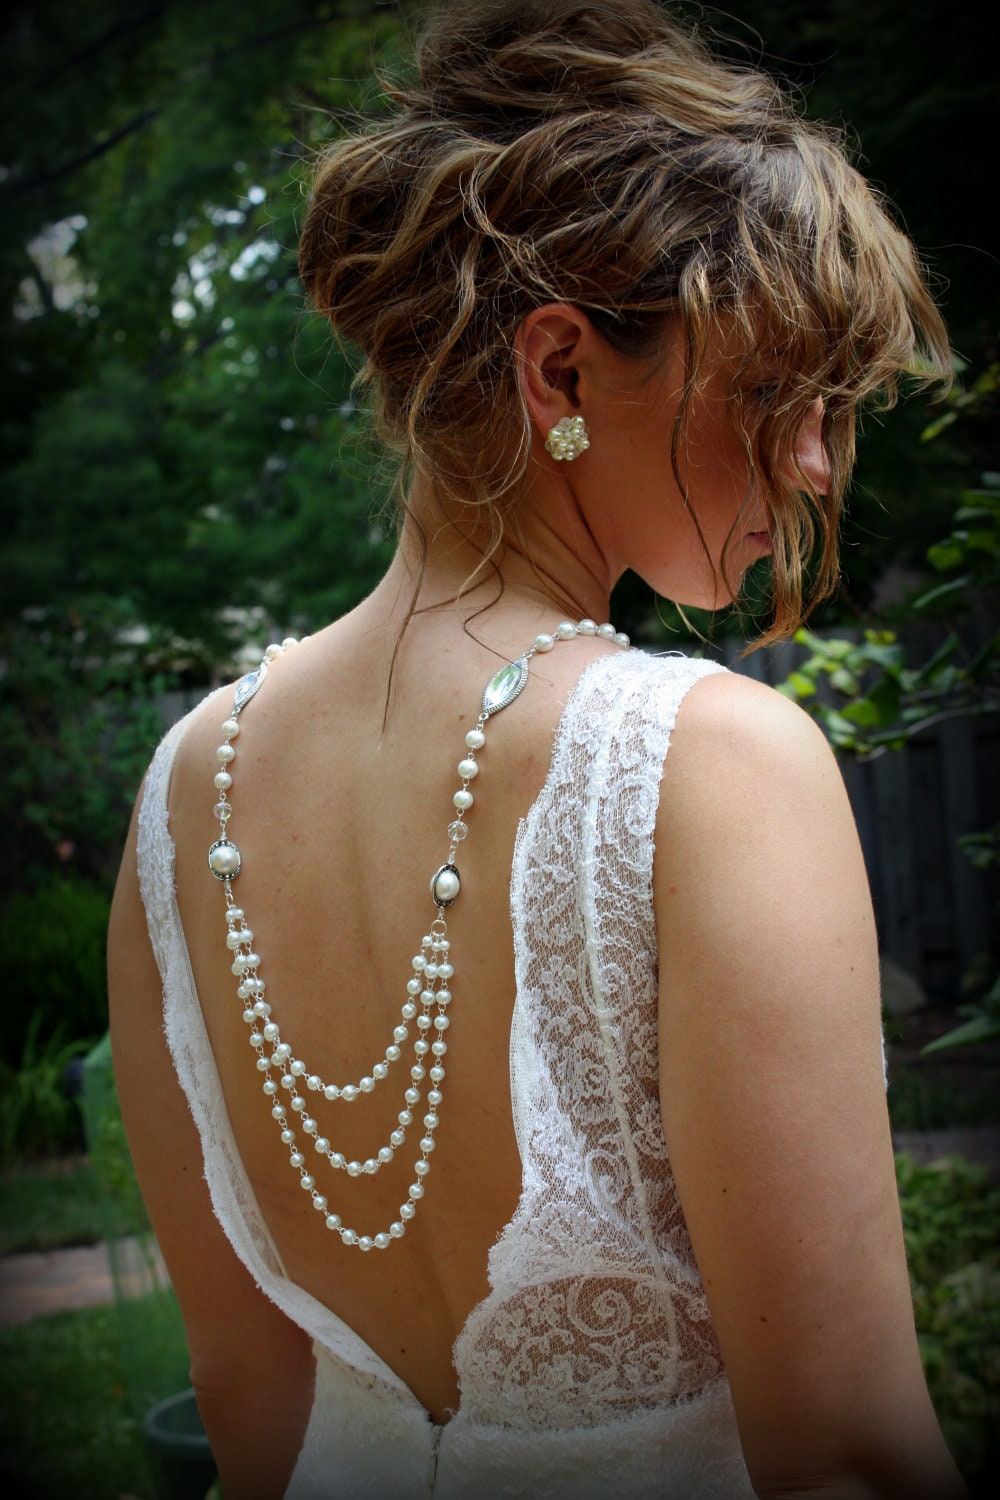 What type of necklace to wear with this dress weddingbee for Back necklace for wedding dress